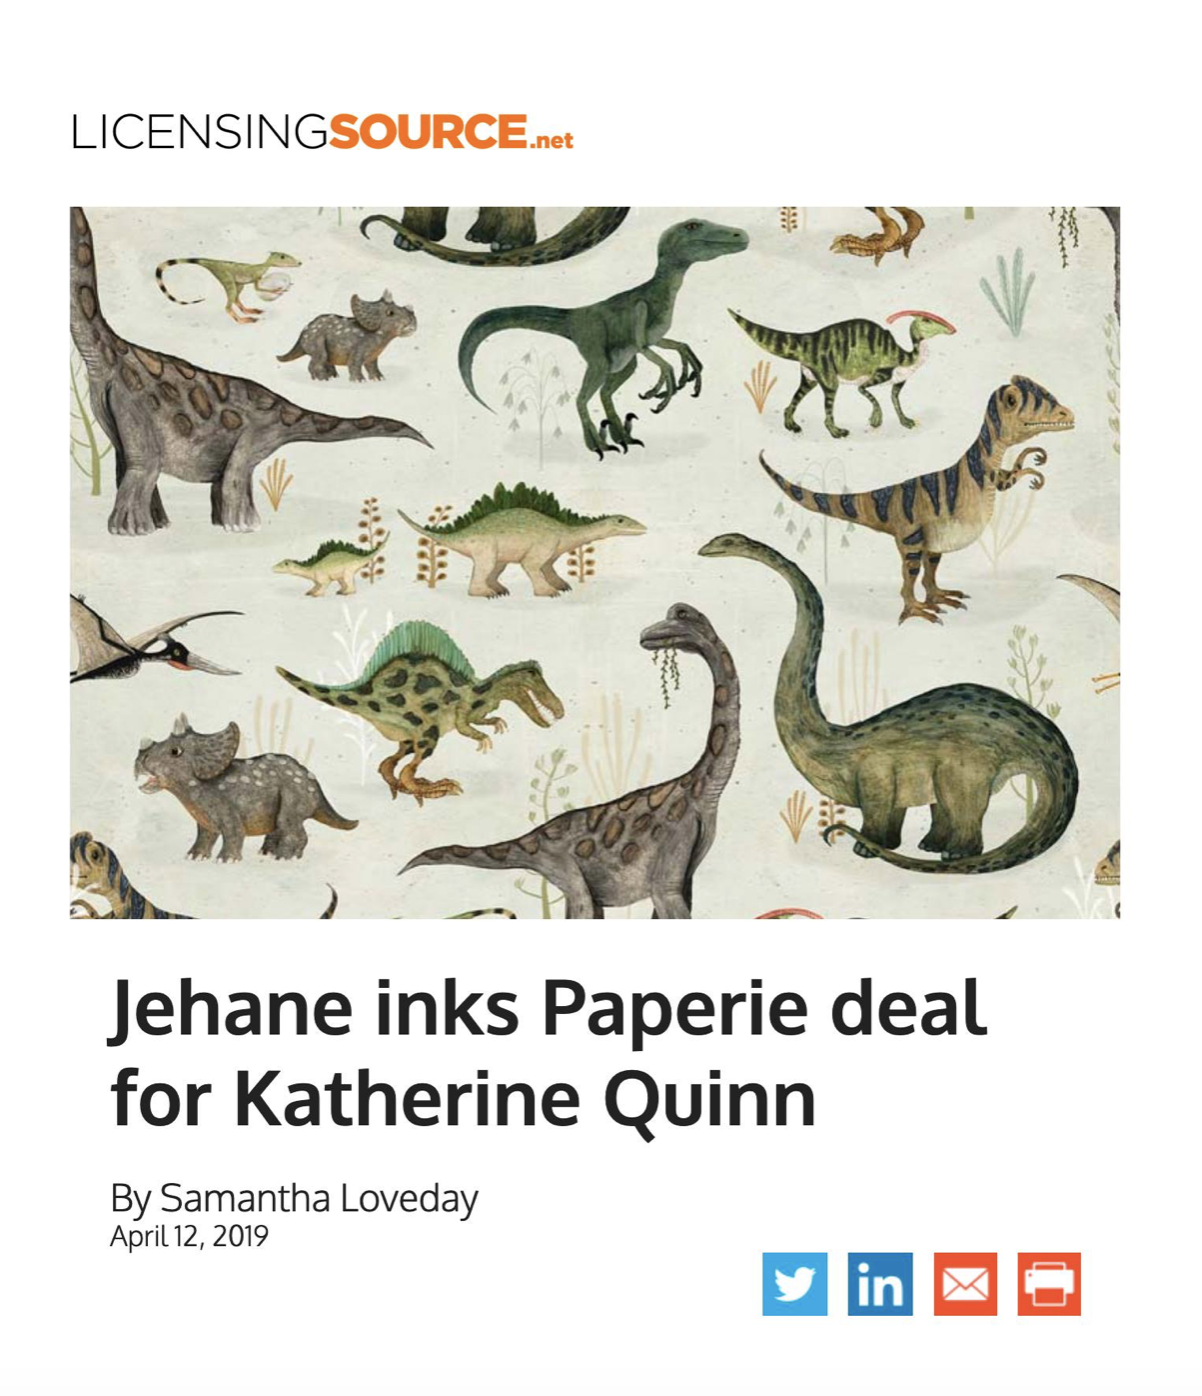 Jehane Ltd in Licensing News - Artist's natural history subjects are now available on a range of wrapping paper.